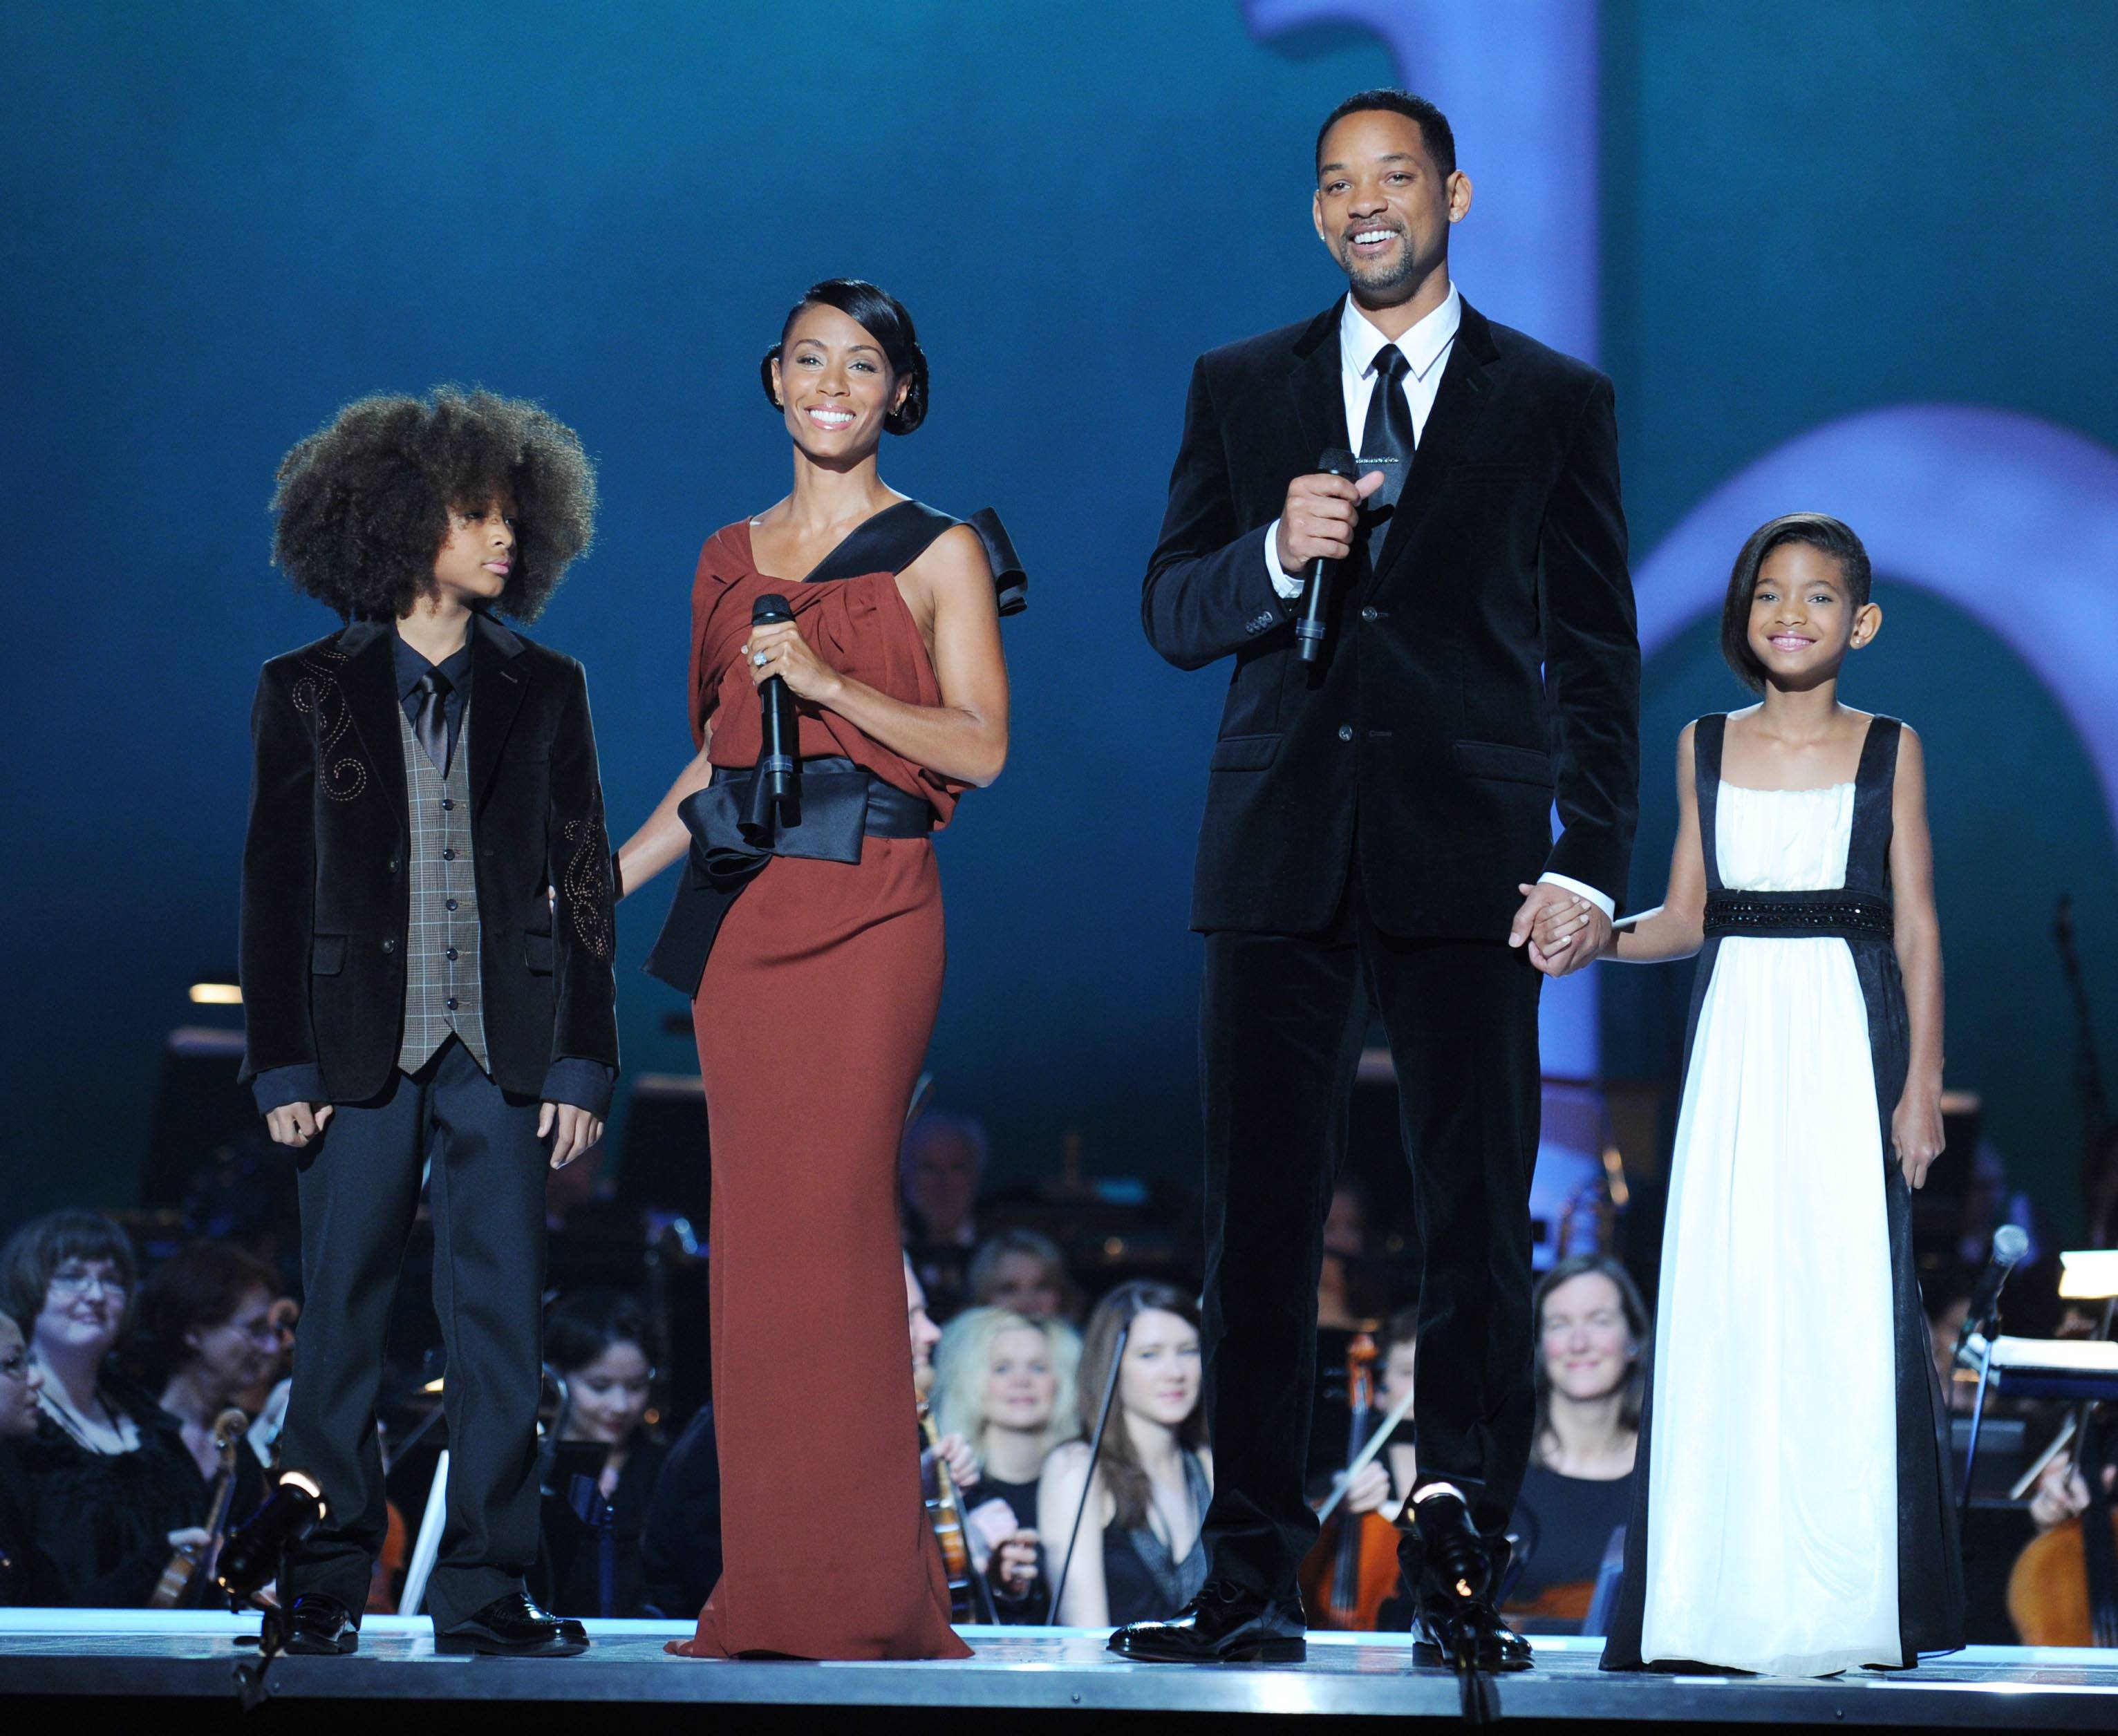 Image Credits: Getty Images / Sandy Young | Hosts Jade Pinkett Smith (2nd L) and Will Smith with children Jaden Smith (L) and Willow Smith (R) onstage during the Nobel Peace Prize Concert at Oslo Spektrum on December 11, 2009 in Oslo, Norway. Tonight's Nobel Peace Prize Concert is hosted by Will Smith and Jada Pinkett Smith and honours this year's Nobel Peace Prize winner US President Barack Obama.